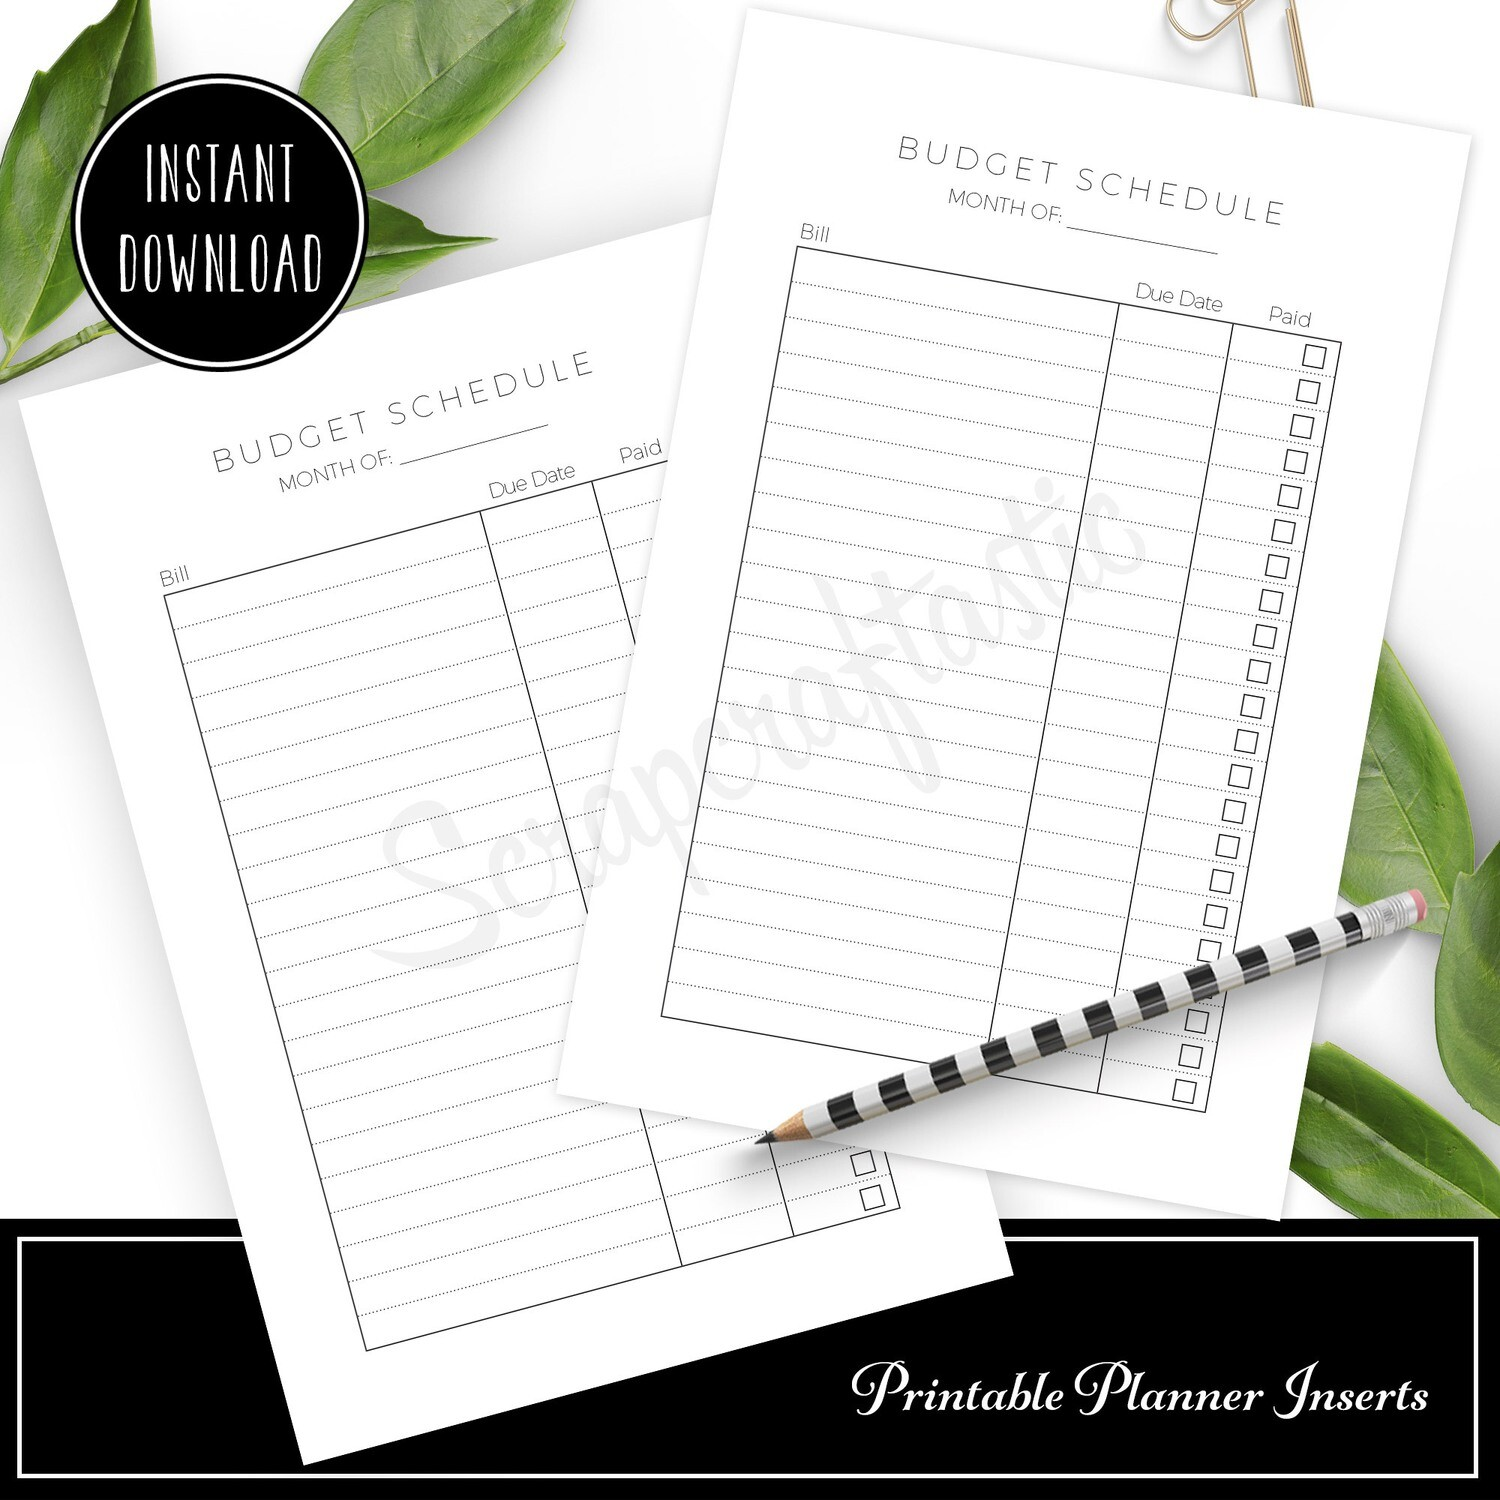 FULL PAGE LETTER SIZE - Monthly Budget Schedule Printable Planner Inserts